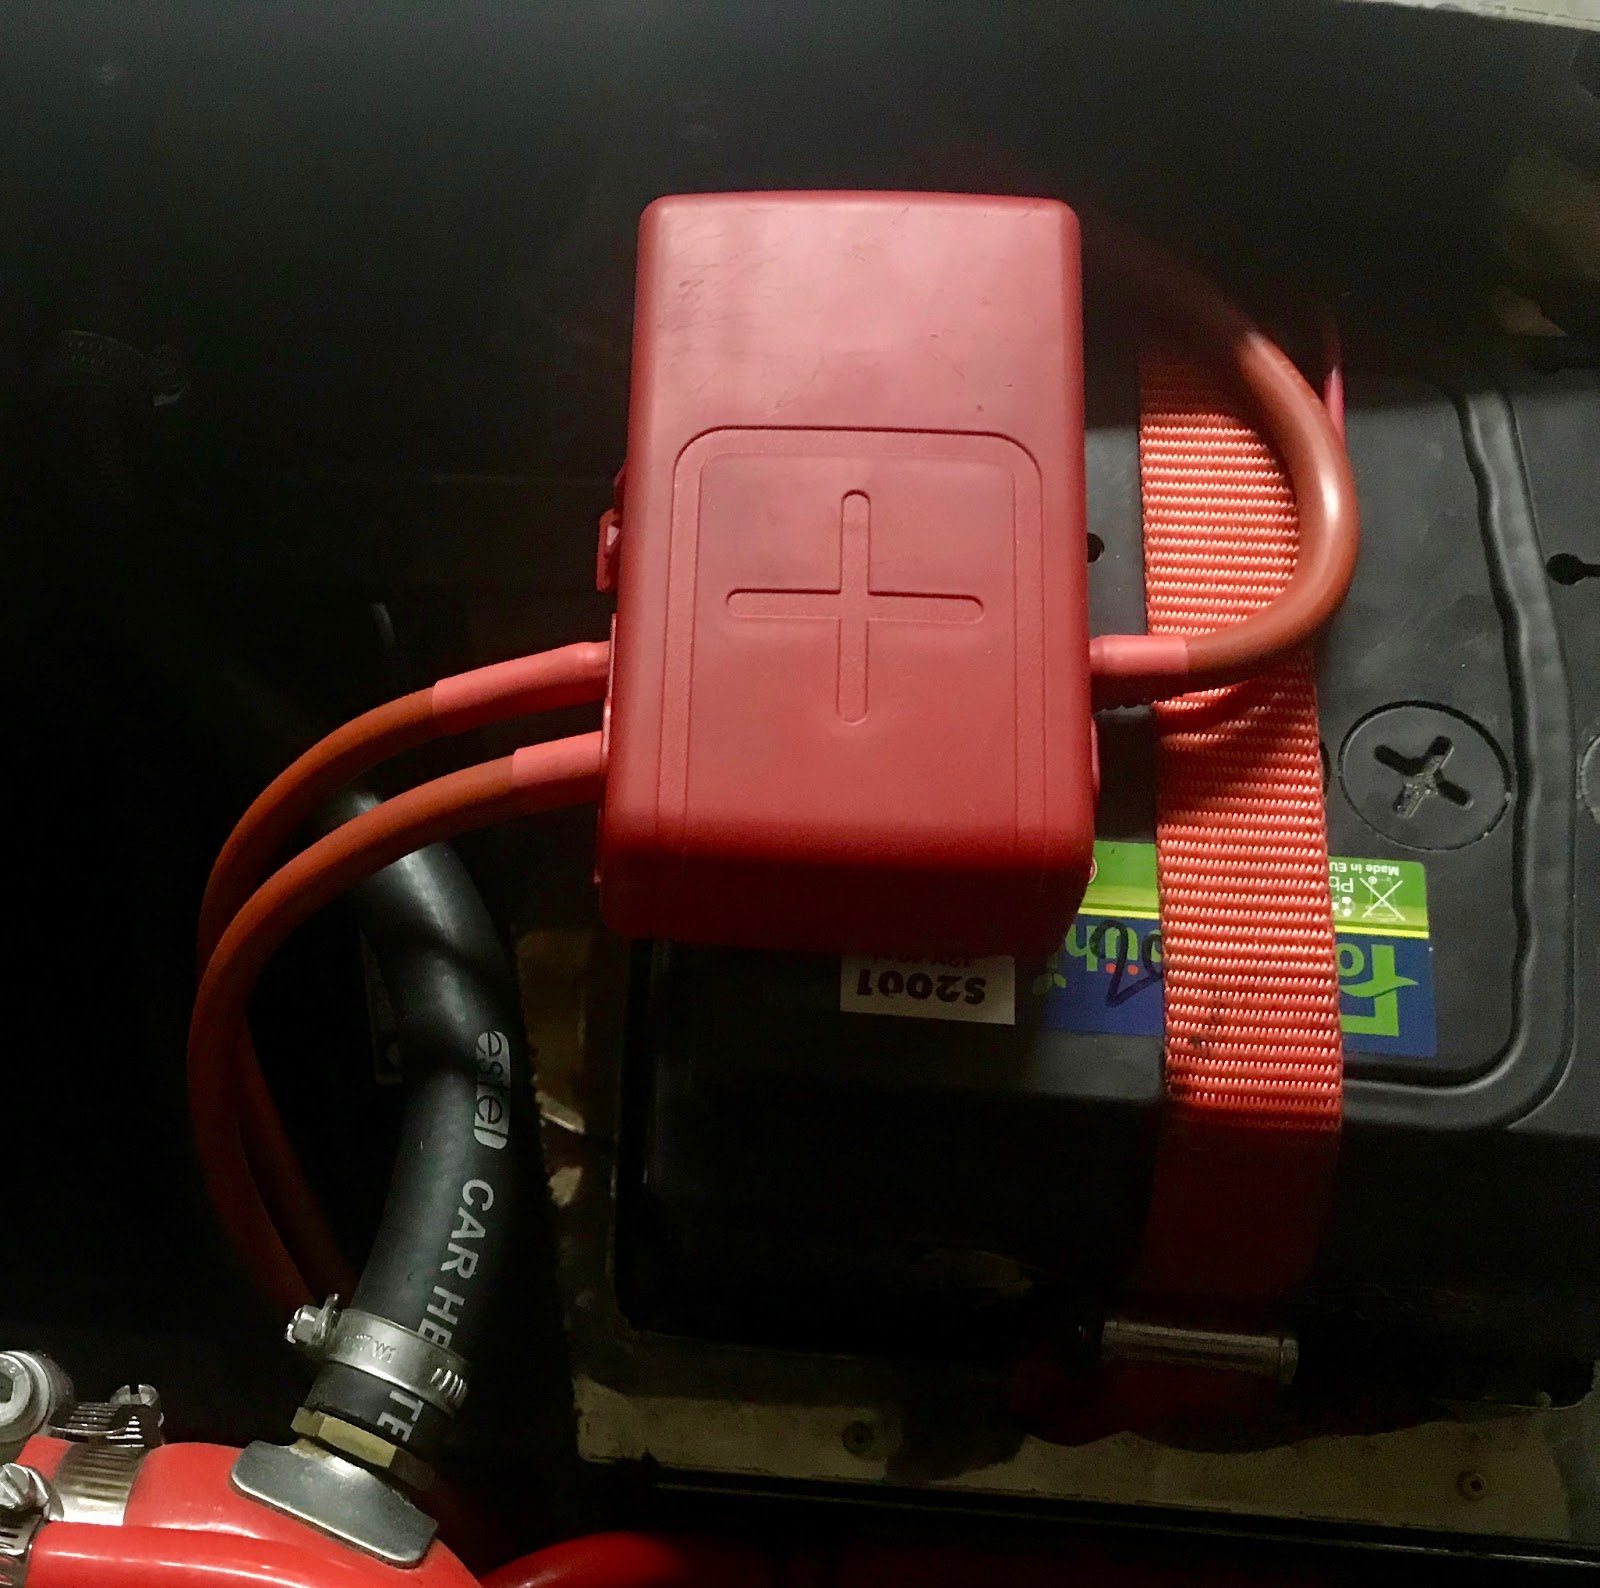 Richards Gbs Zero Power Distribution Changes Battery Fusebox Prep Car Fuse Box Test Update Engine Run Better Voltage Indicated On The Clocks So Thumbs Up For Wiring Change Significantly Shorter Runs And Fewer Joints Have